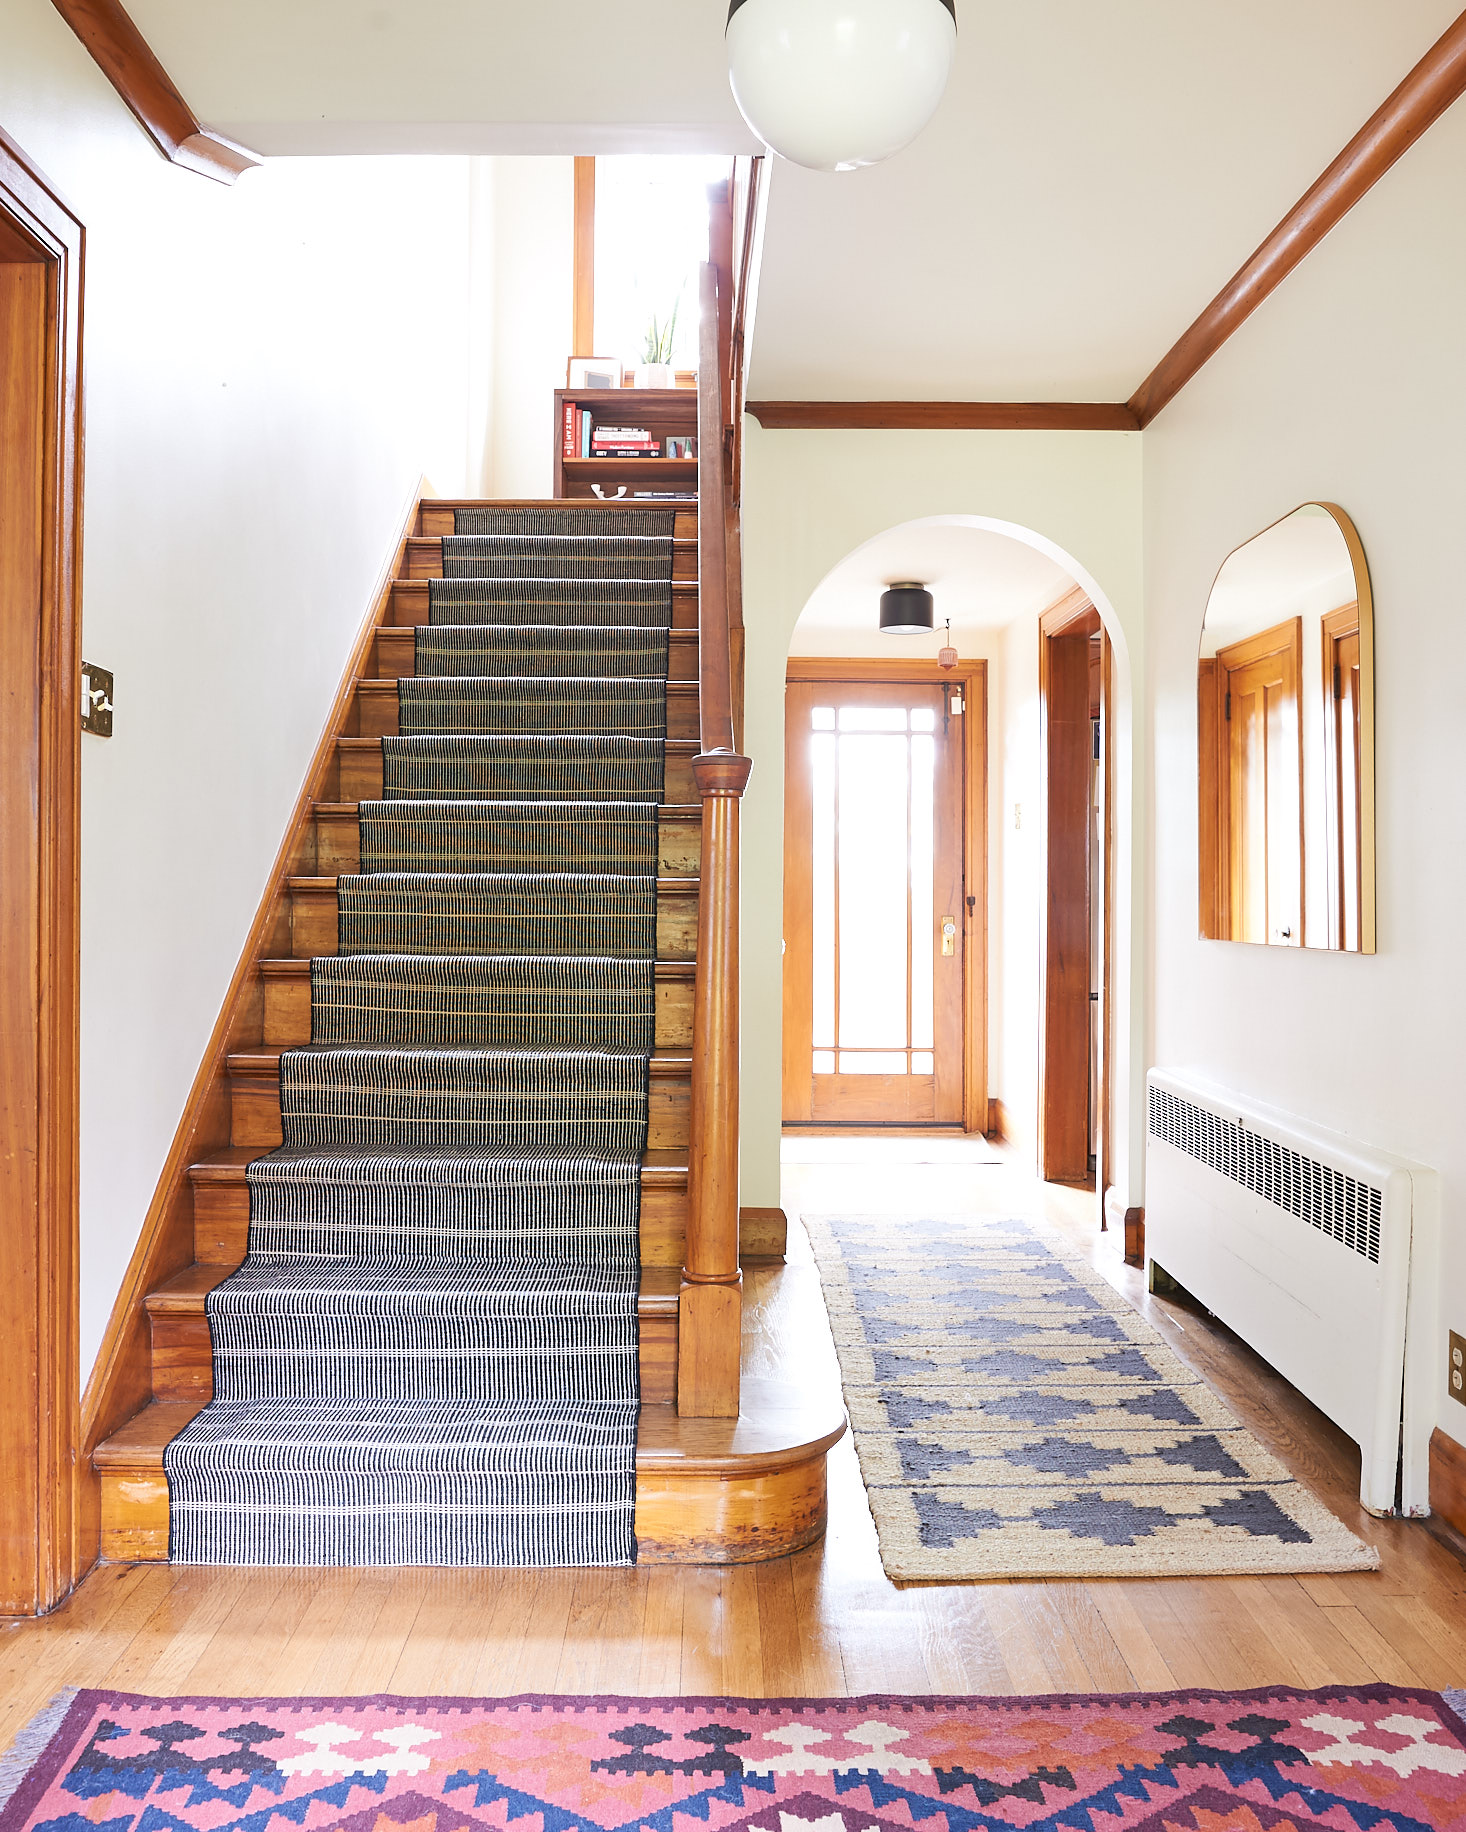 Wood stairs with stair runner